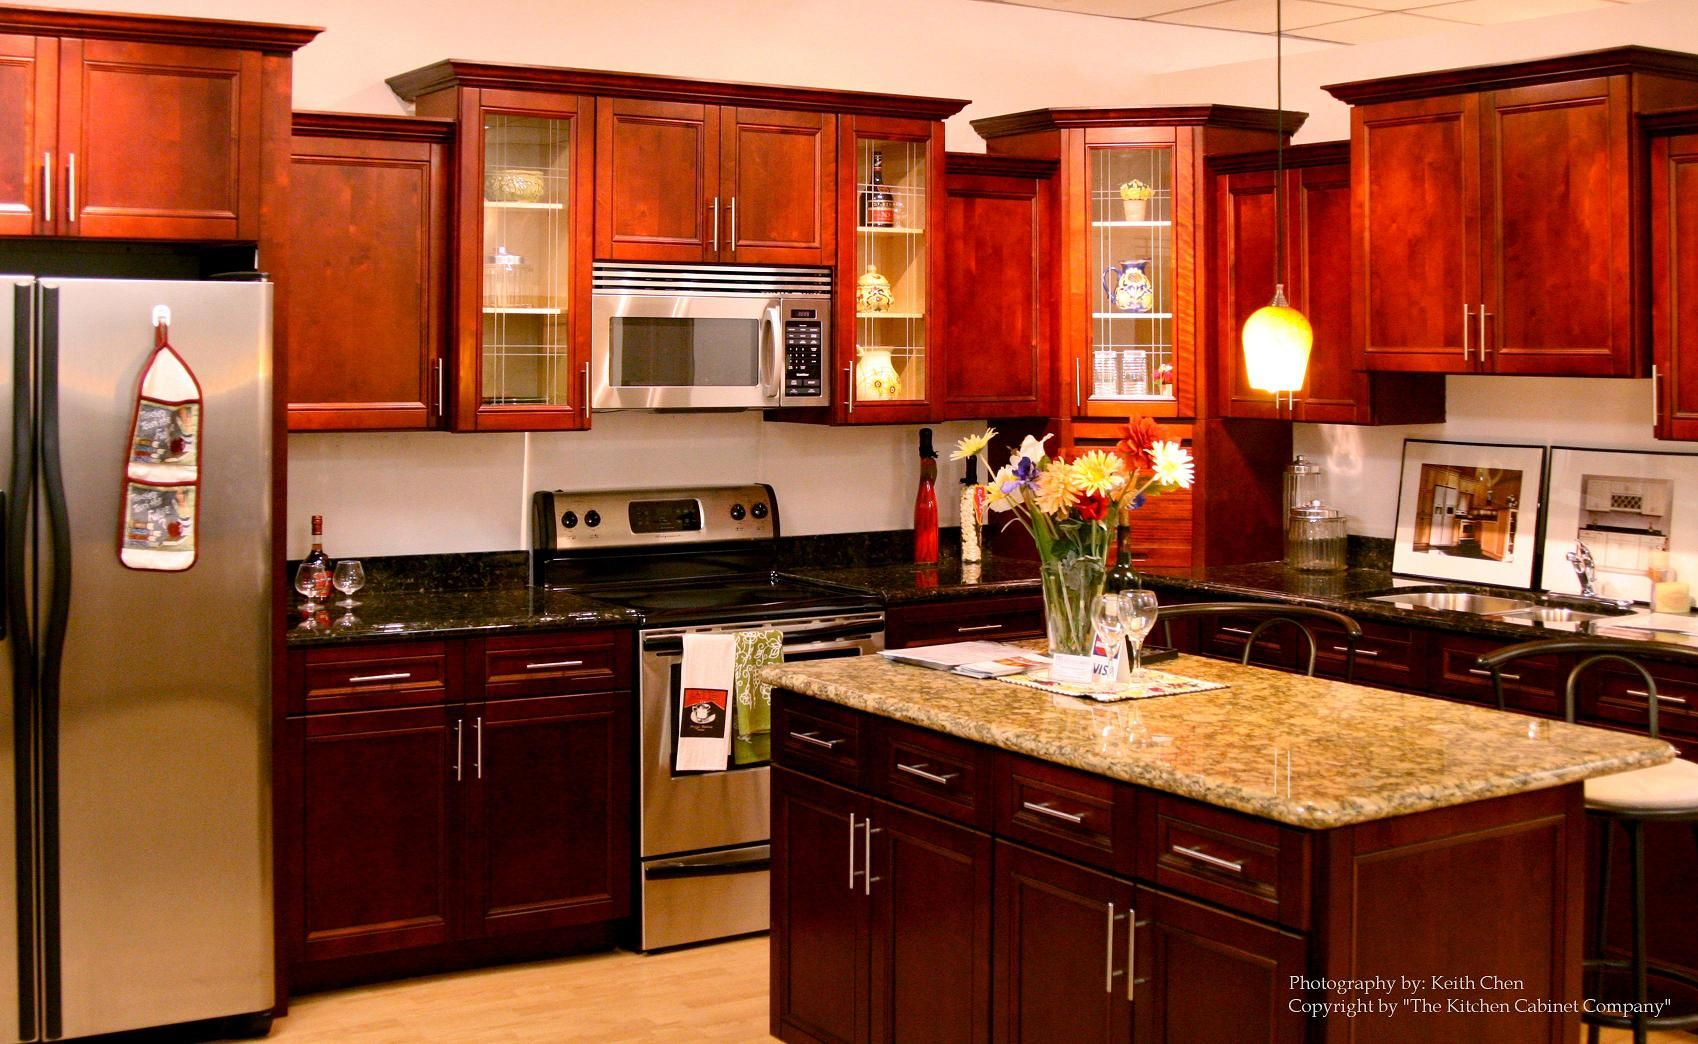 Maple kitchen cabinets affordable ideas maple kitchen for Budget kitchen cabinets ltd